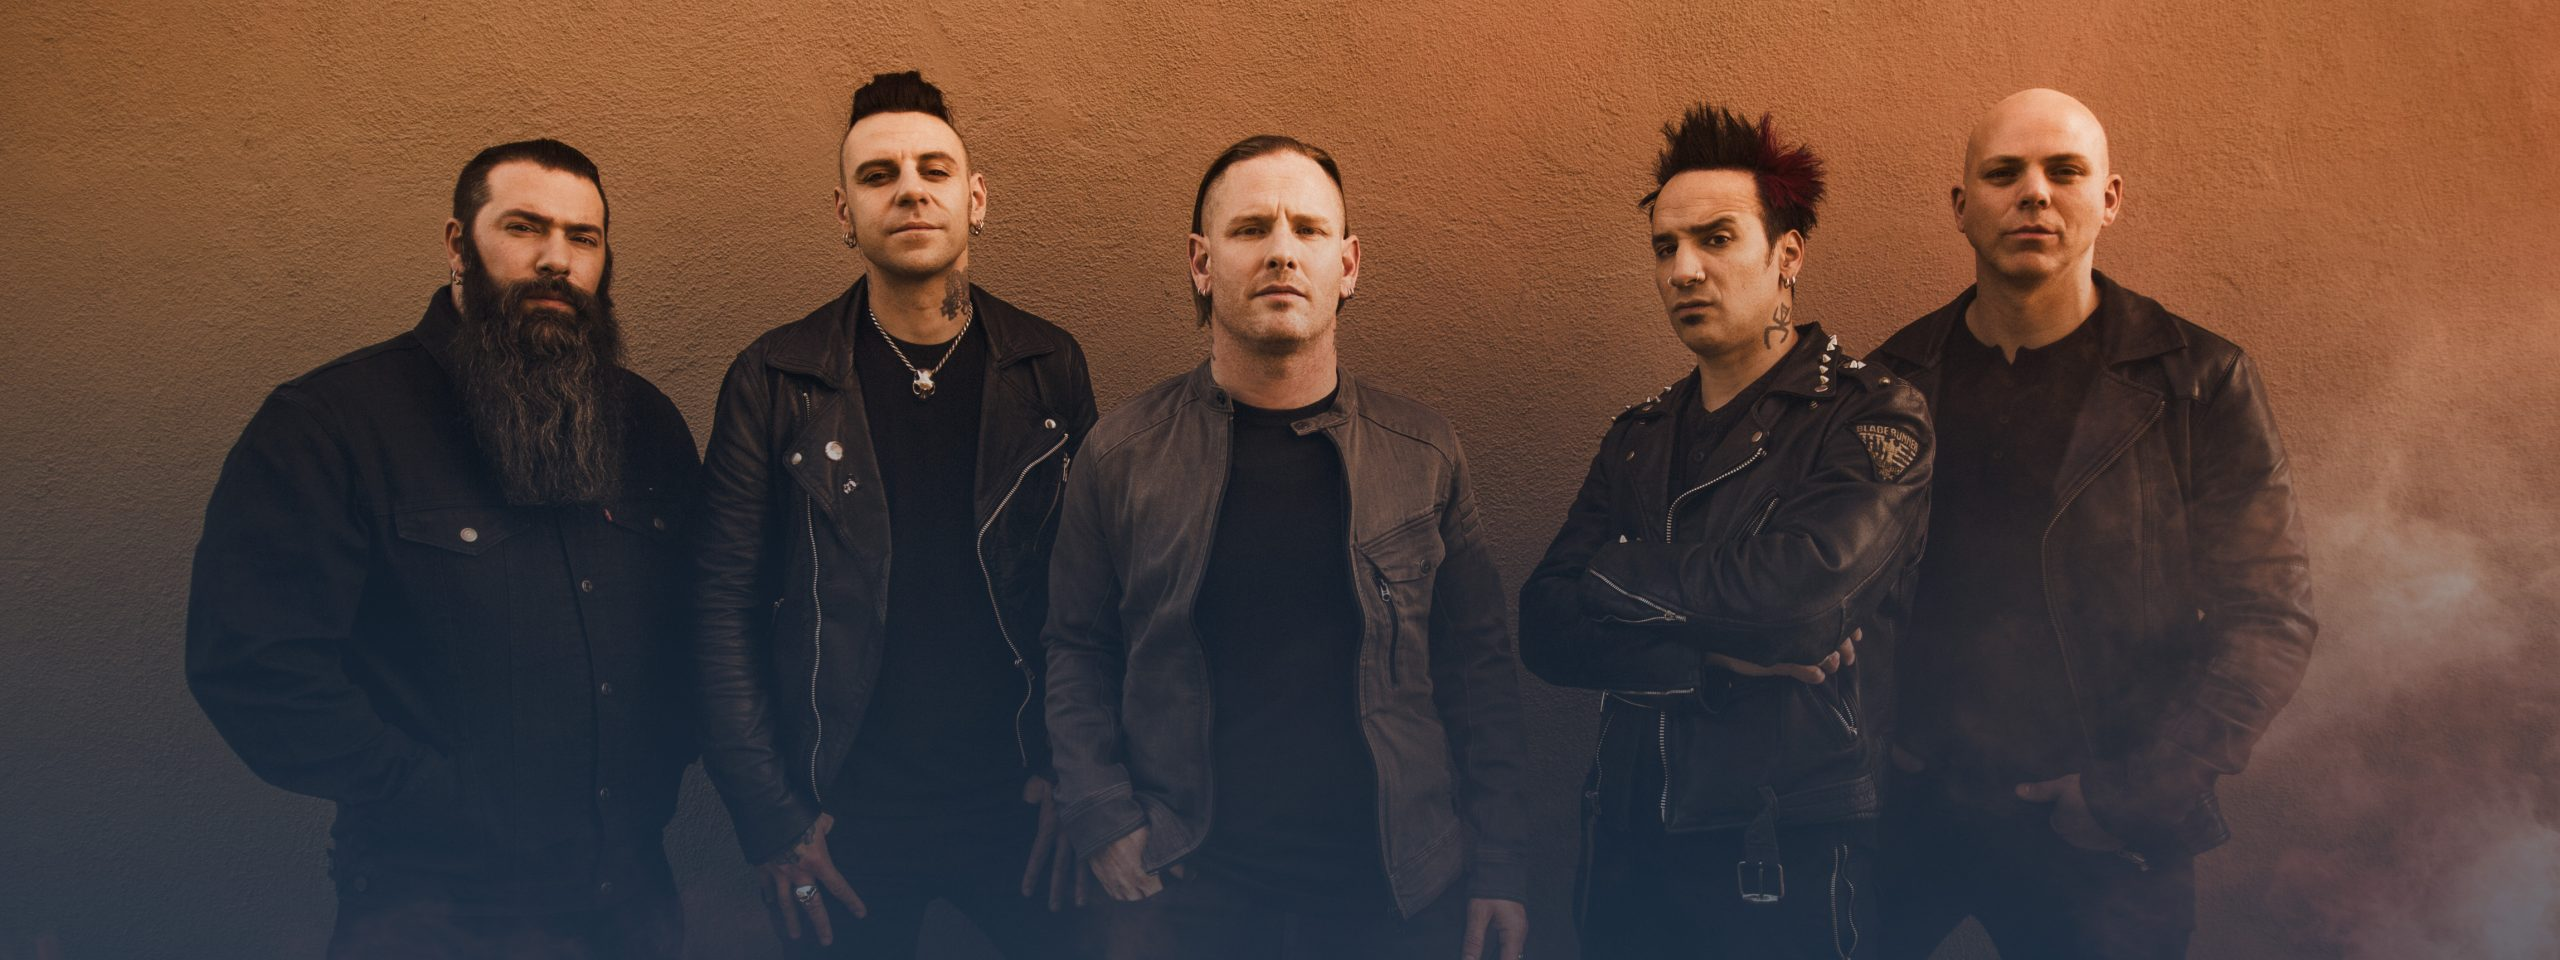 Out Today by The Orchard: ATL, Stone Sour & More